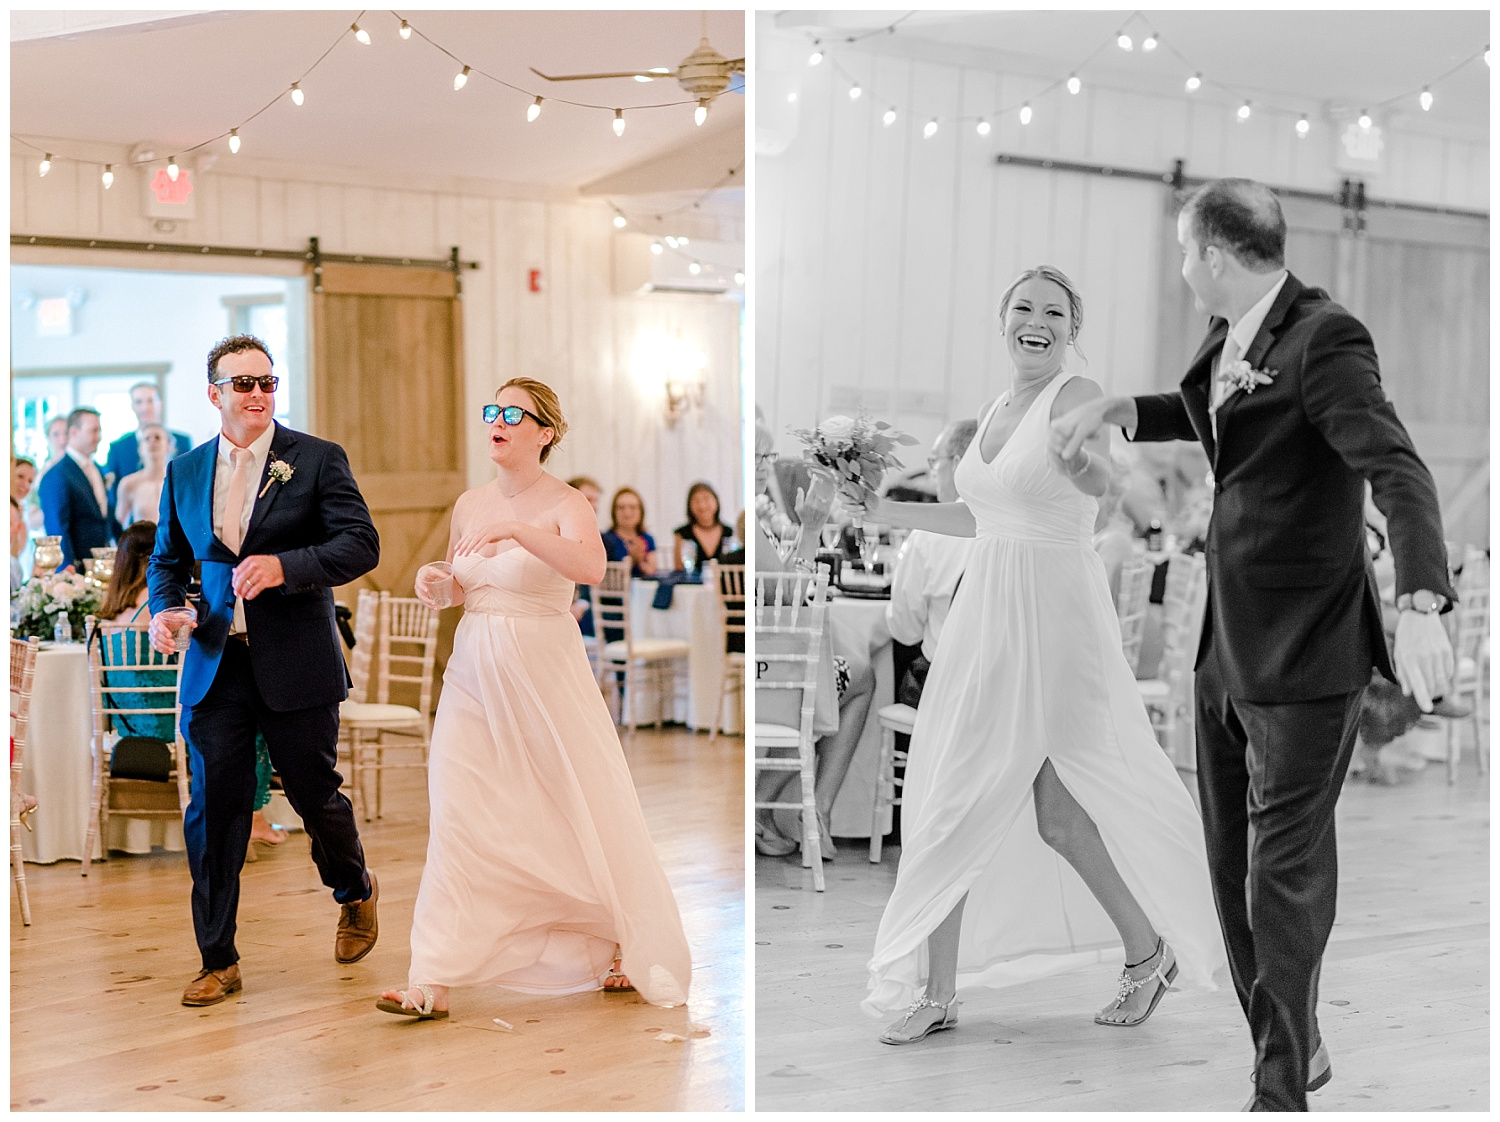 Navy and Blush pink inspired summertime whitewoods wedding in Northeastern Pennsylvania NEPA wapwallopen wedding venue by  PA based wedding and lifestyle photographer Lytle photography_0046.jpg